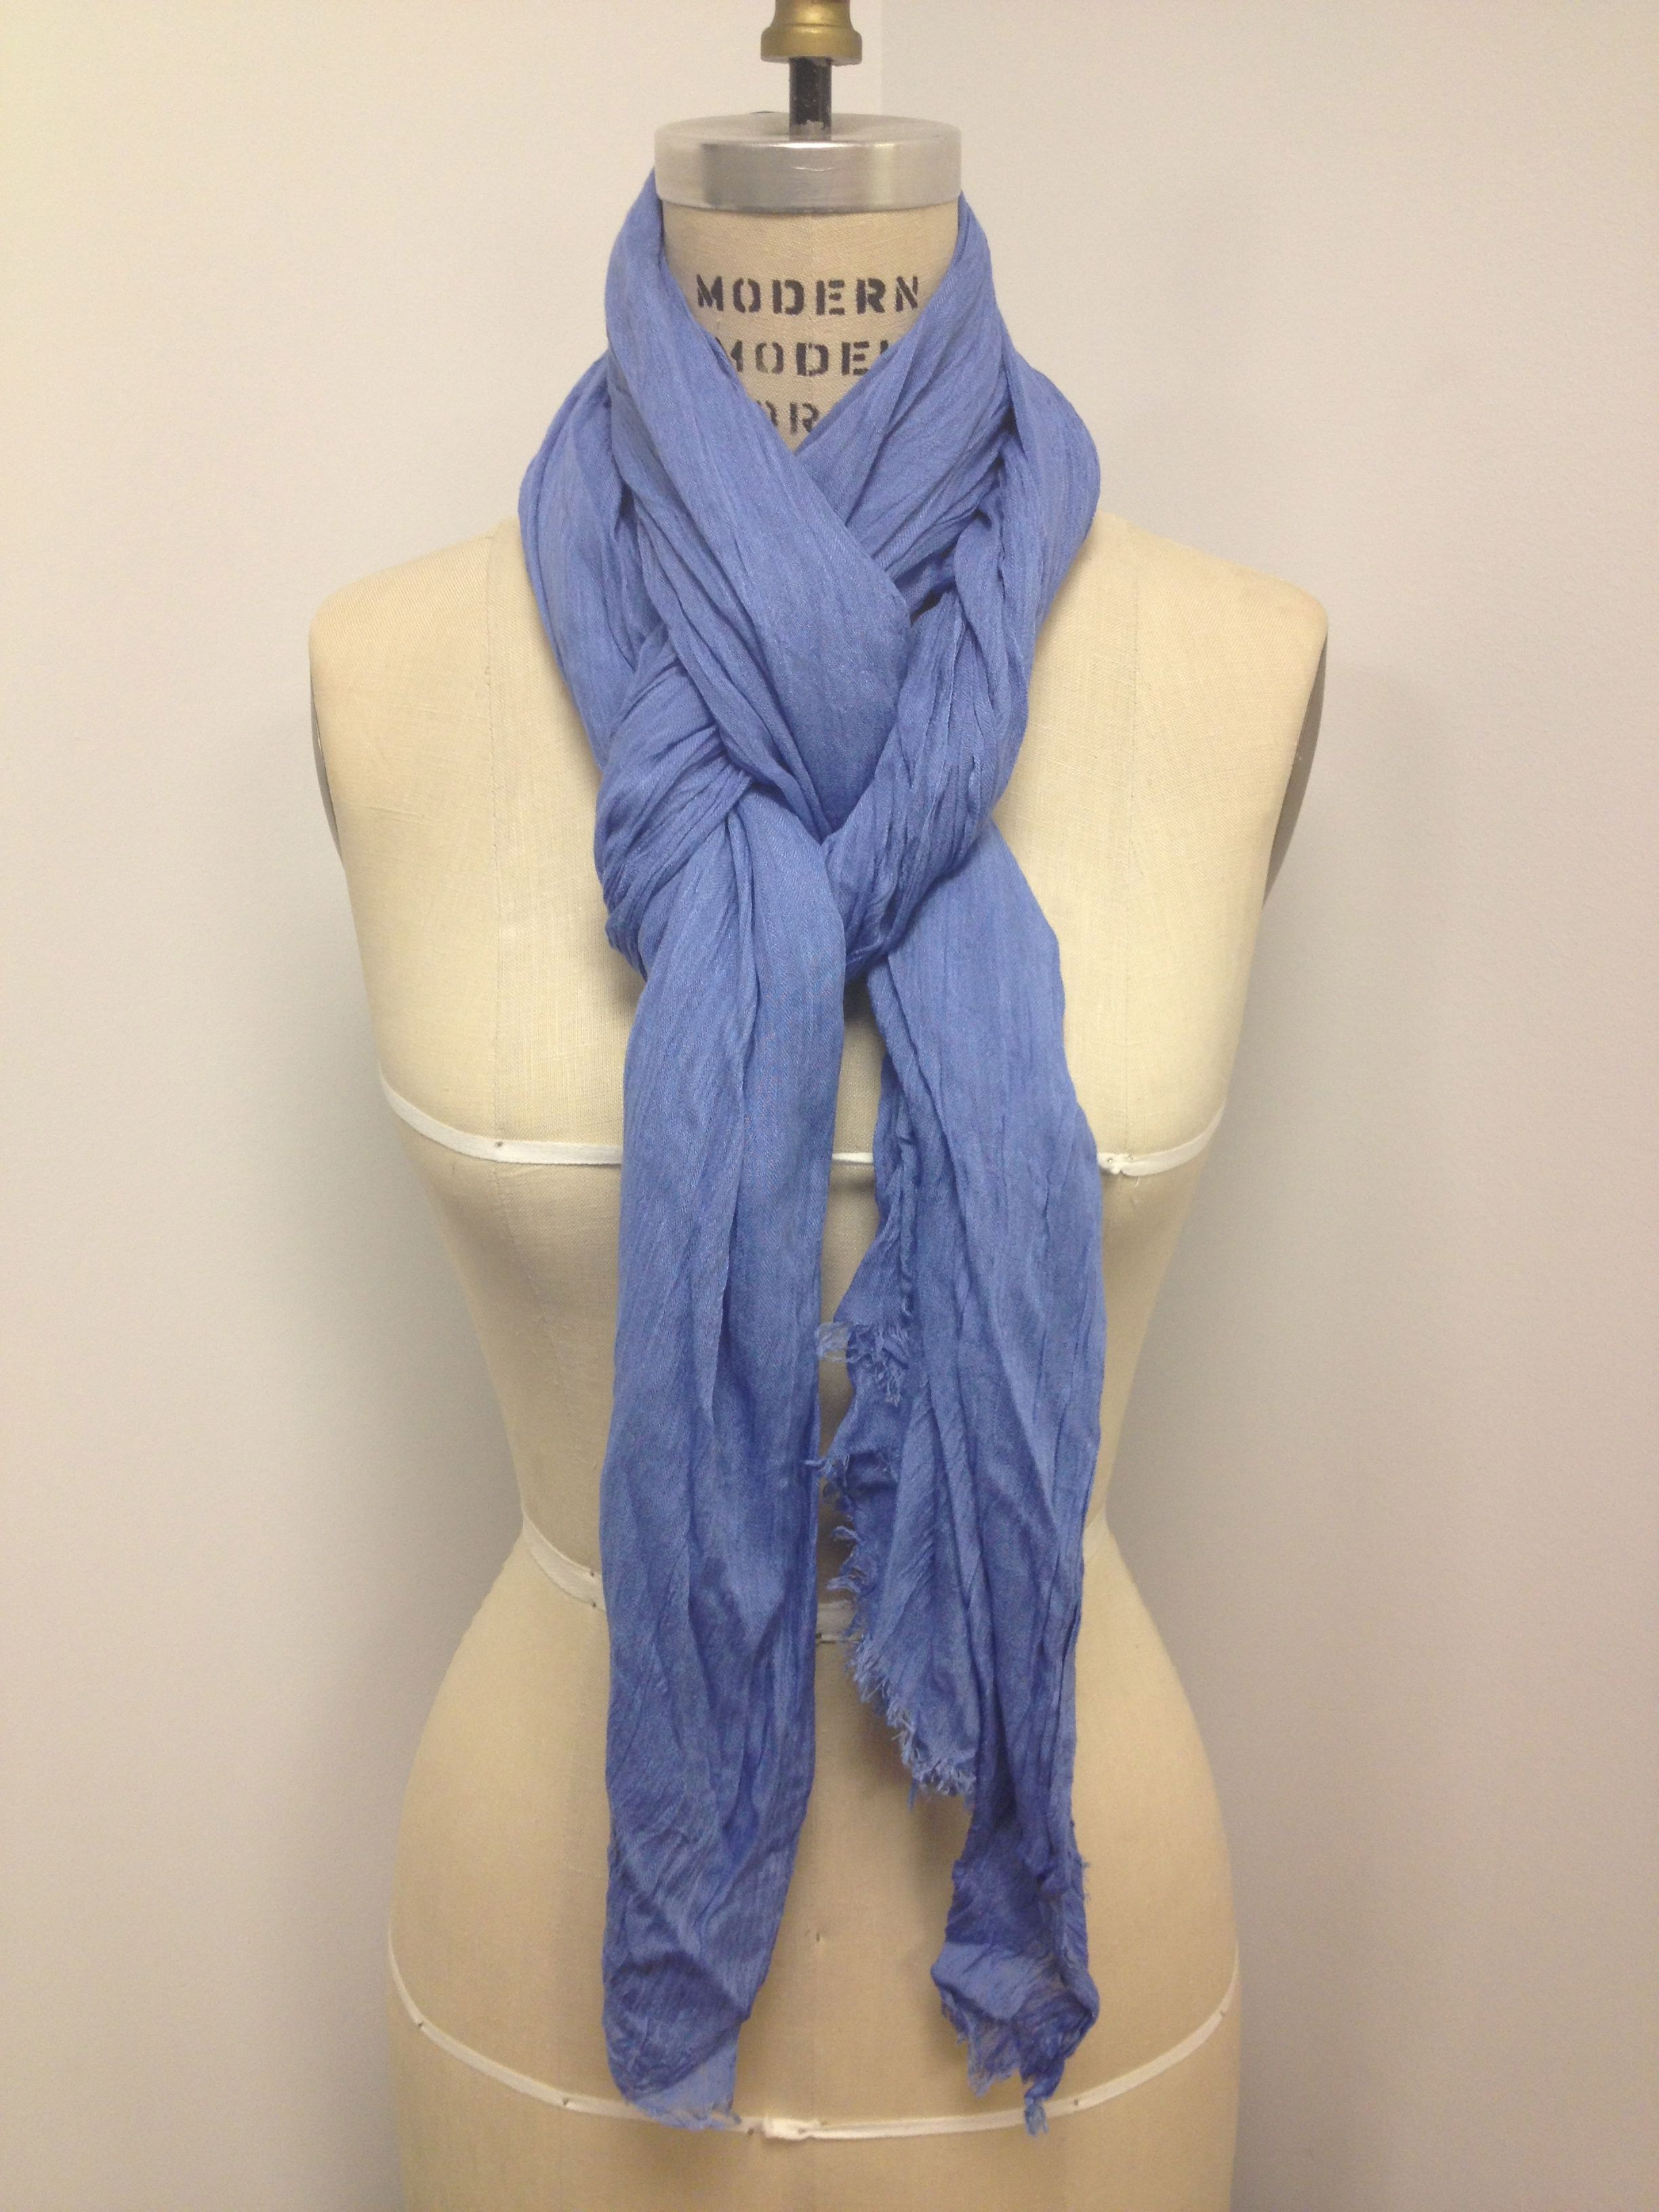 Easy Tie Dye Tips And Step By Step Instructions: Knots, Scarfs Tying And Real